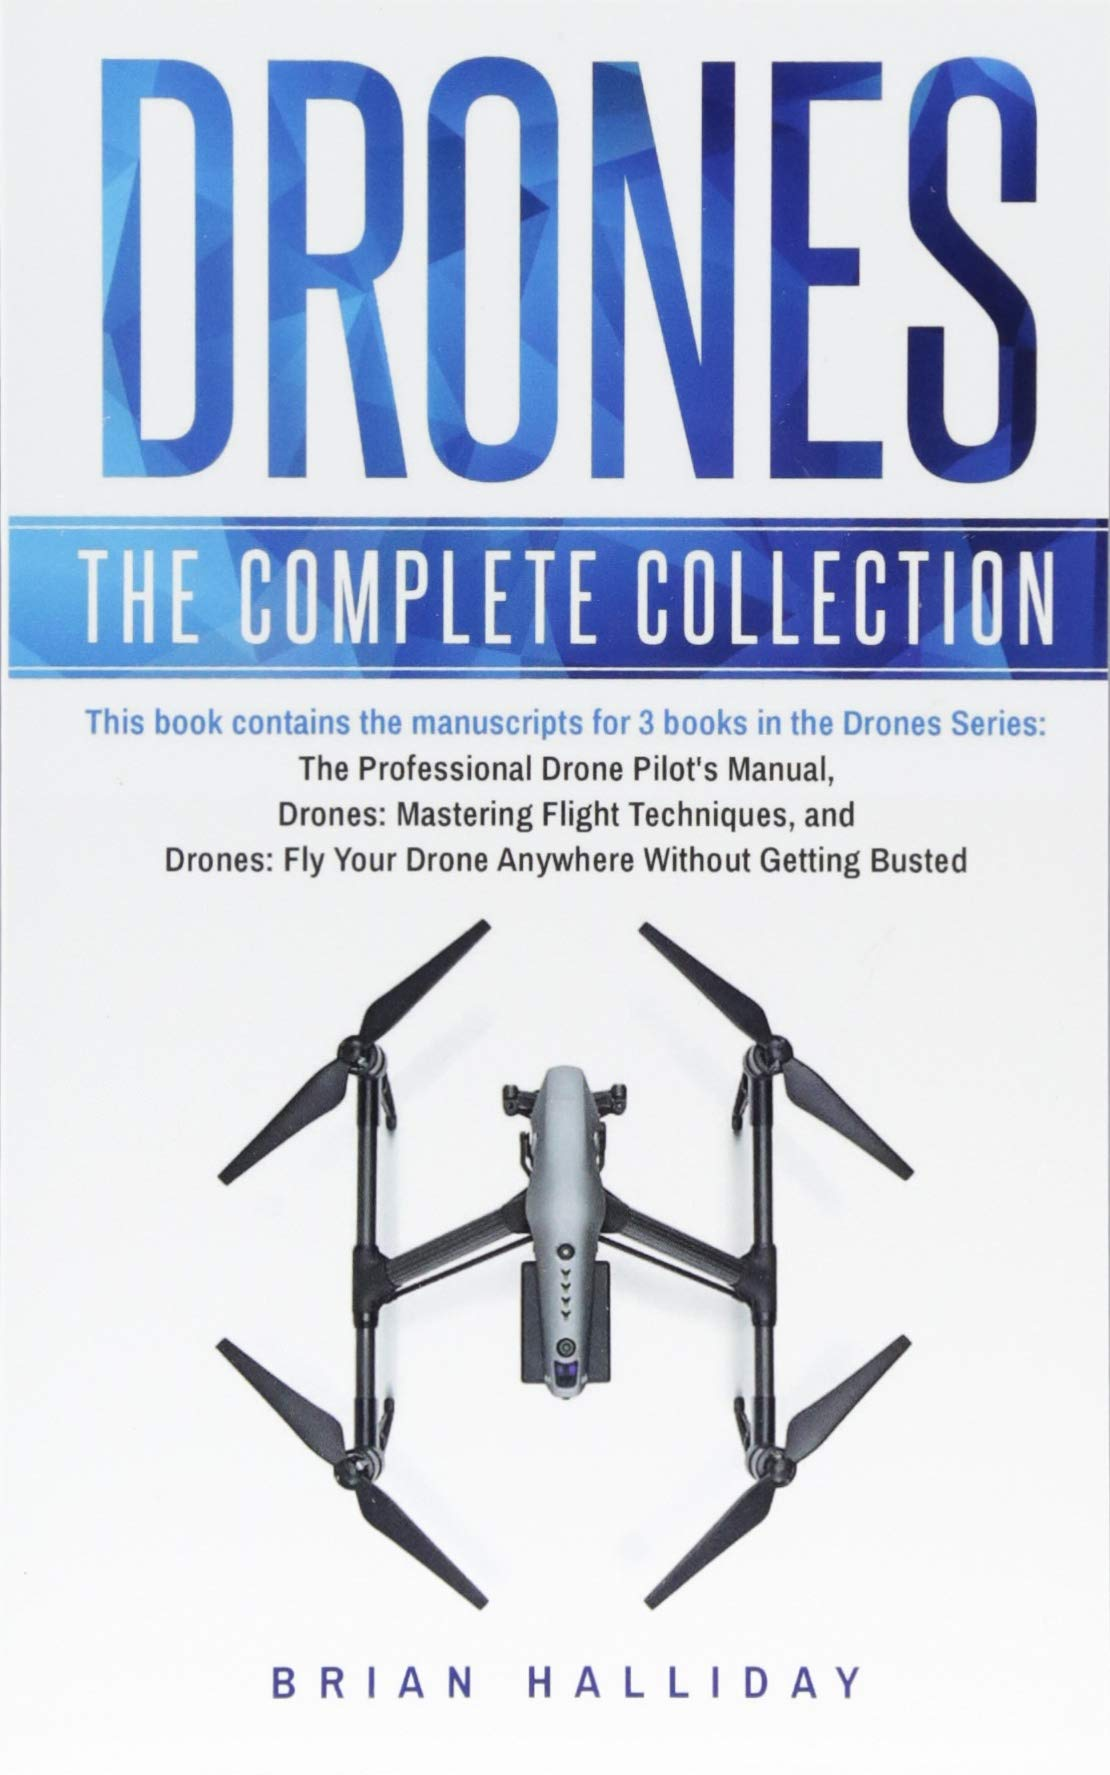 Drones  The Complete Collection  Three Books In One. Drones  The Professional Drone Pilot's Manual Drones  Mastering Flight Techniques Drones  Fly Your Drone Anywhere Without Getting Busted